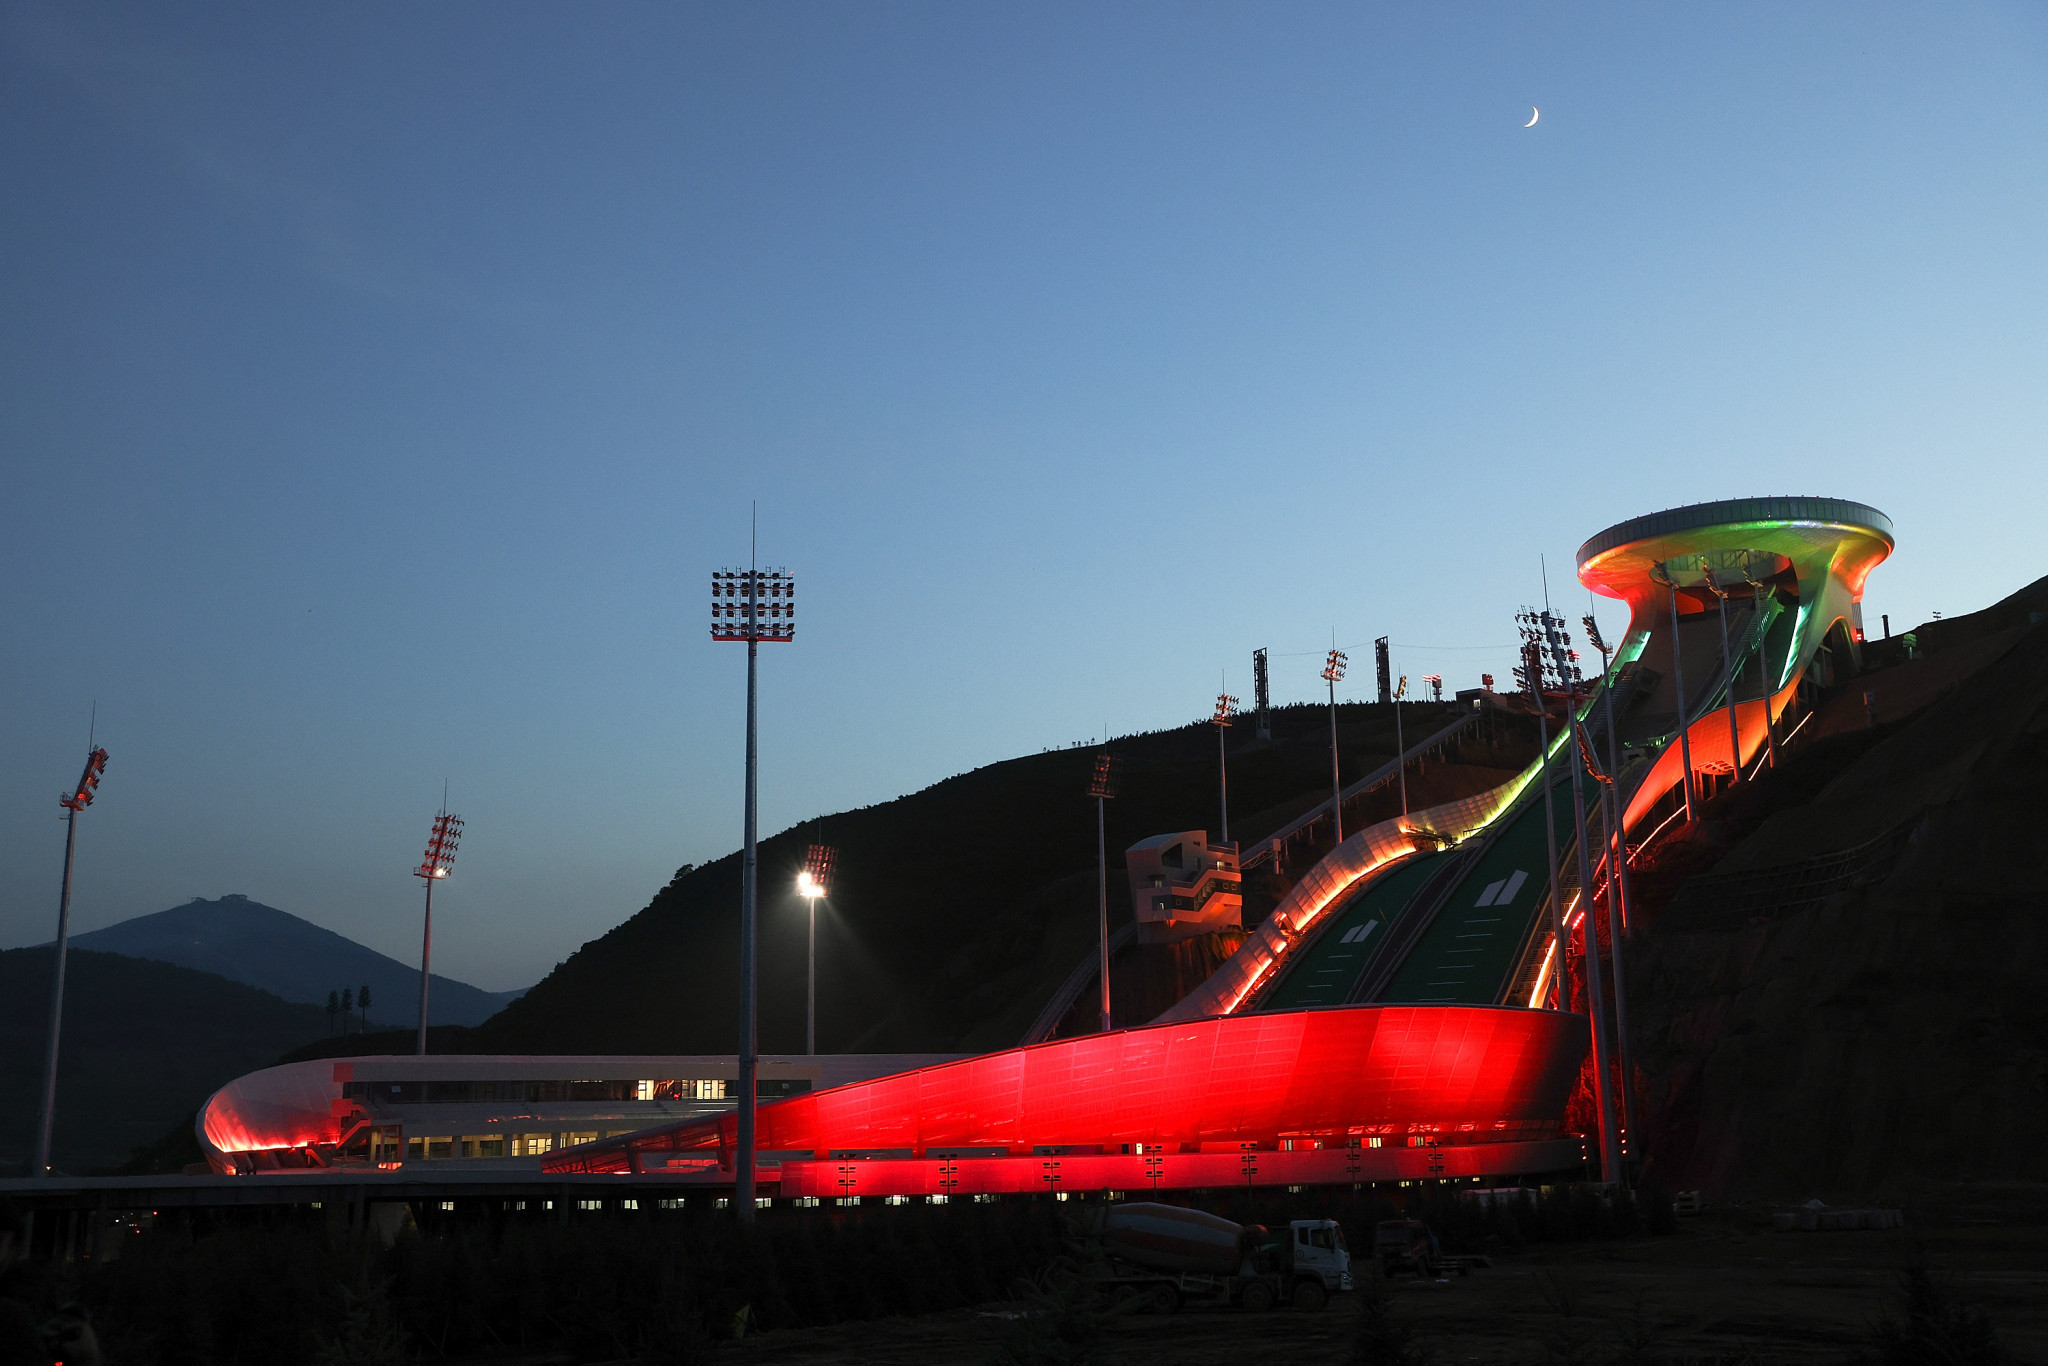 All venues for Beijing 2022 to be completed and tested by end of year, organisers insist